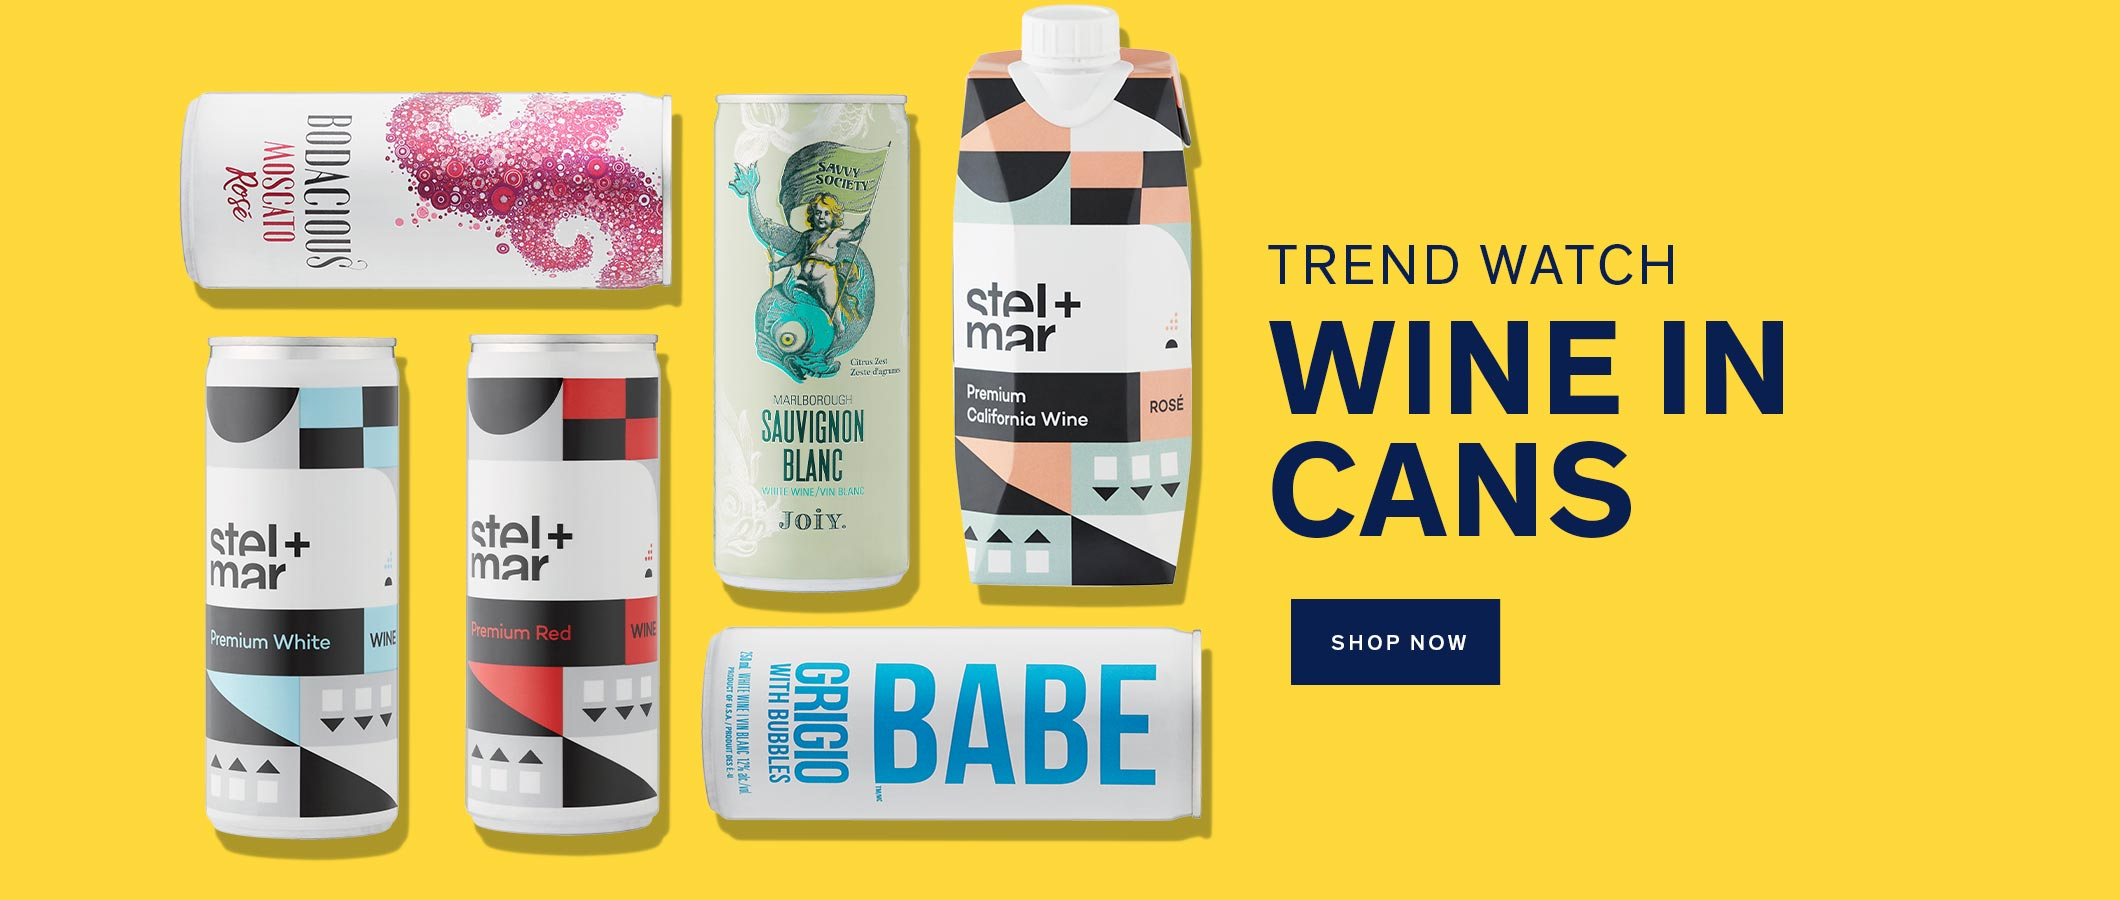 Trend Watch Wine in Cans